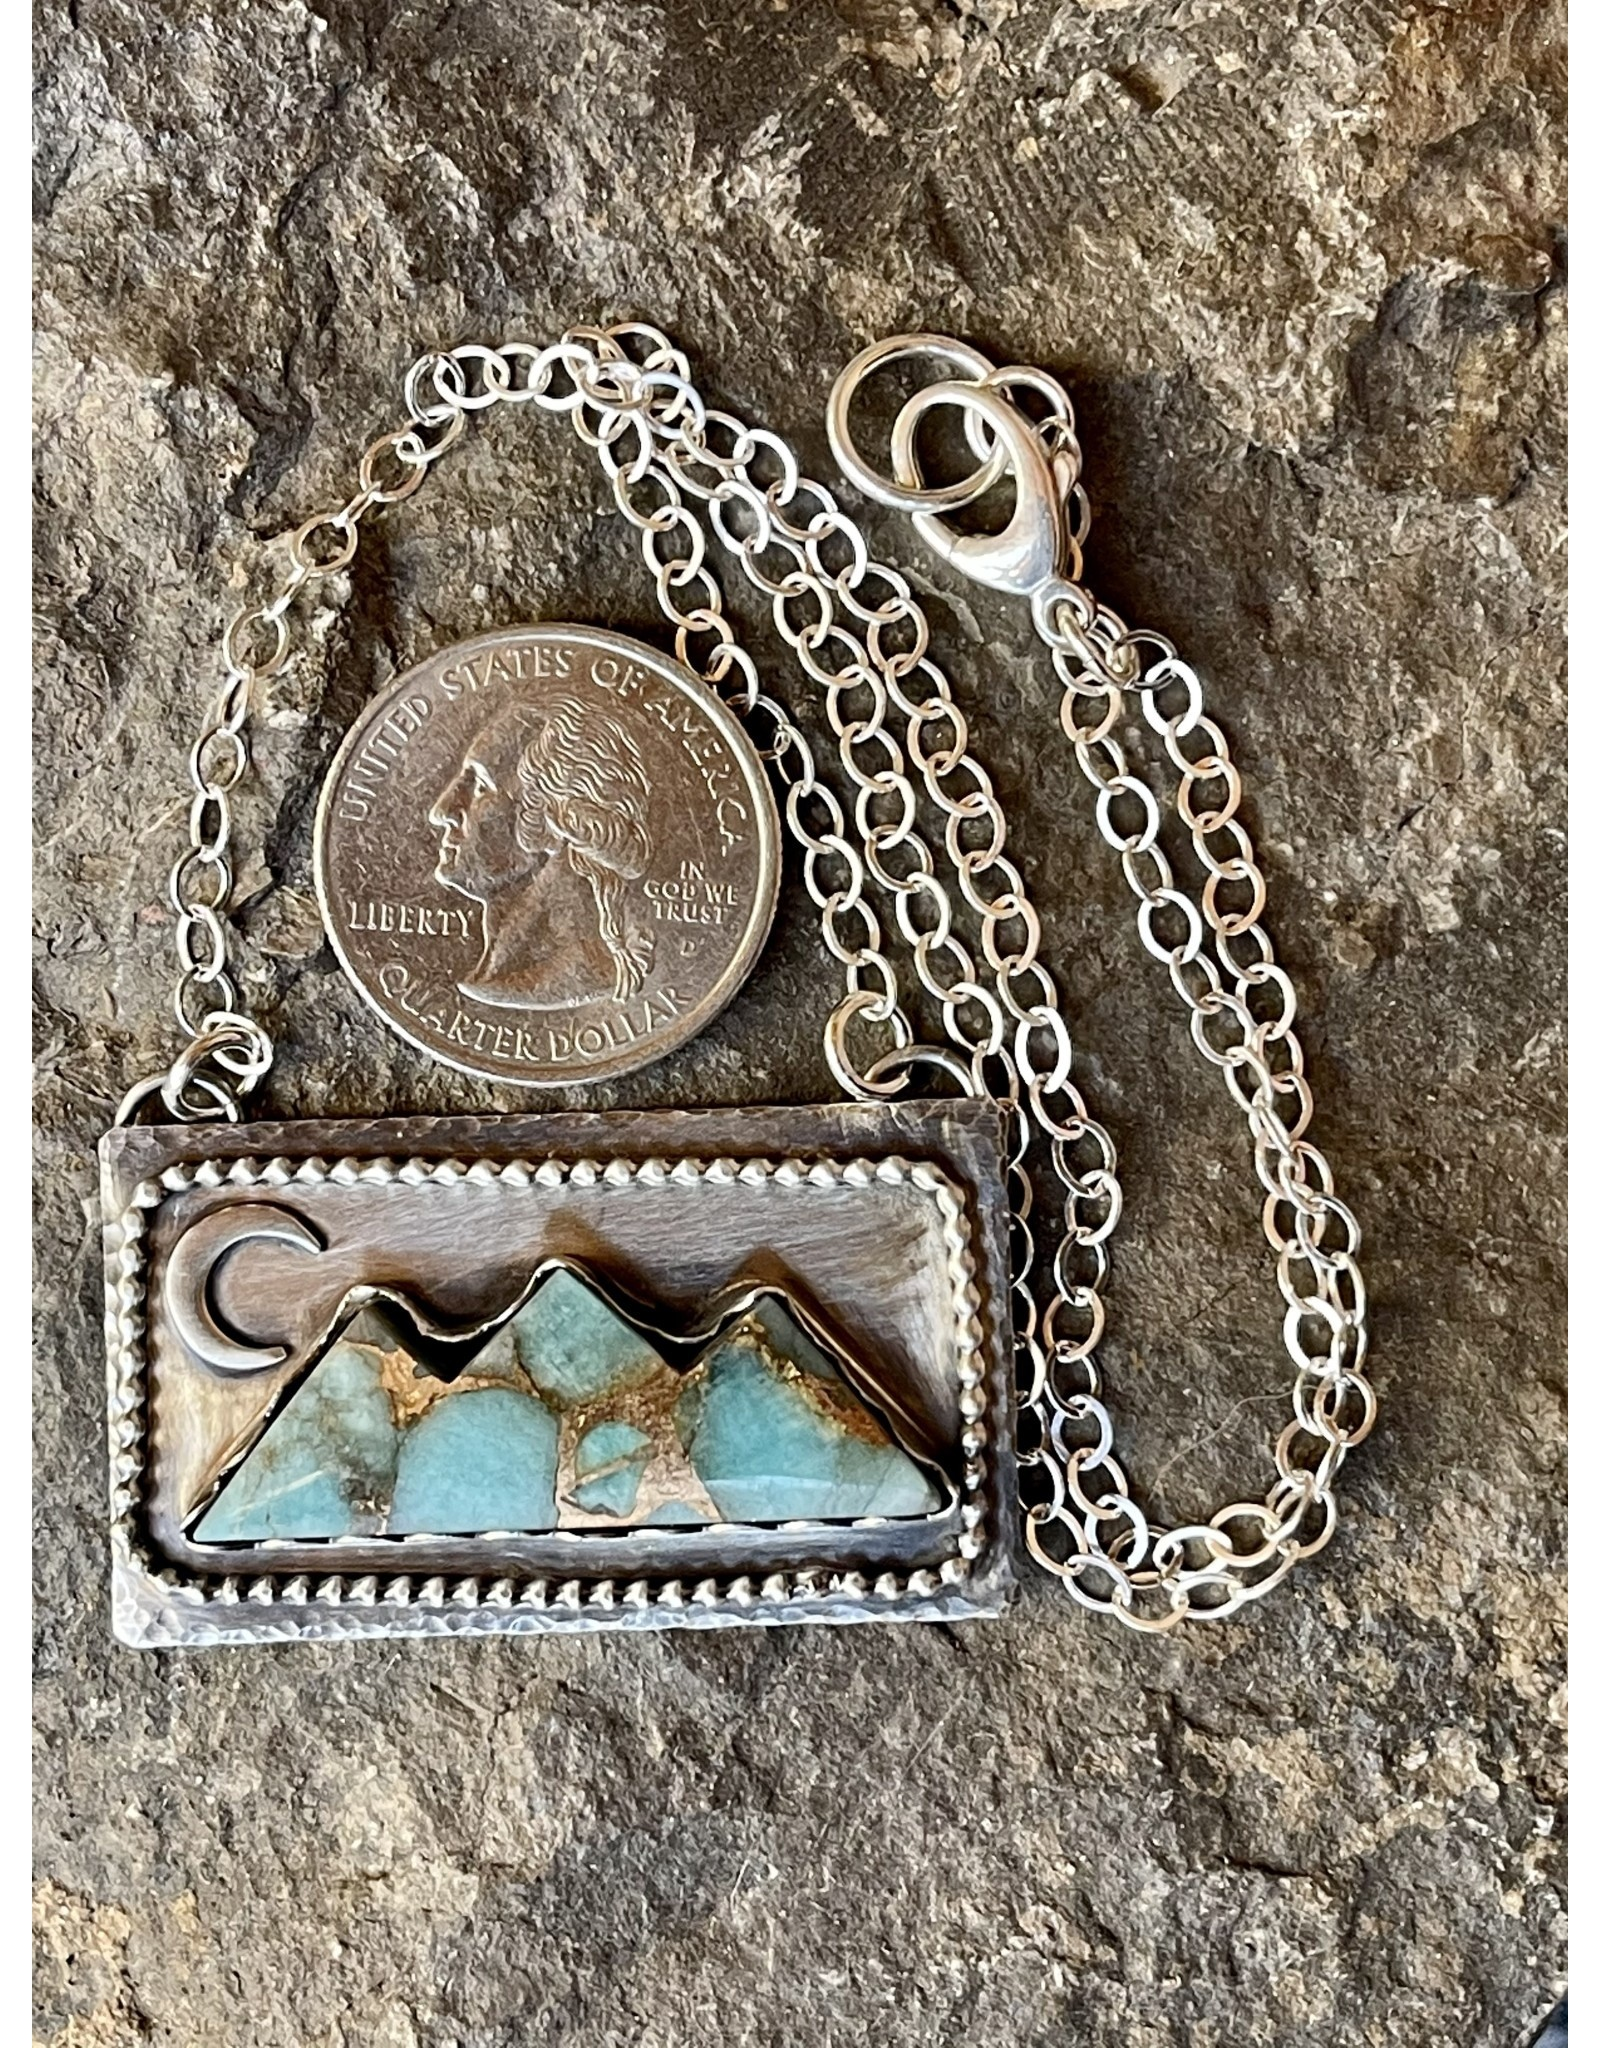 Annette Colby - Jeweler Amazonite Triple Mountain & Moon Necklace - Annette Colby